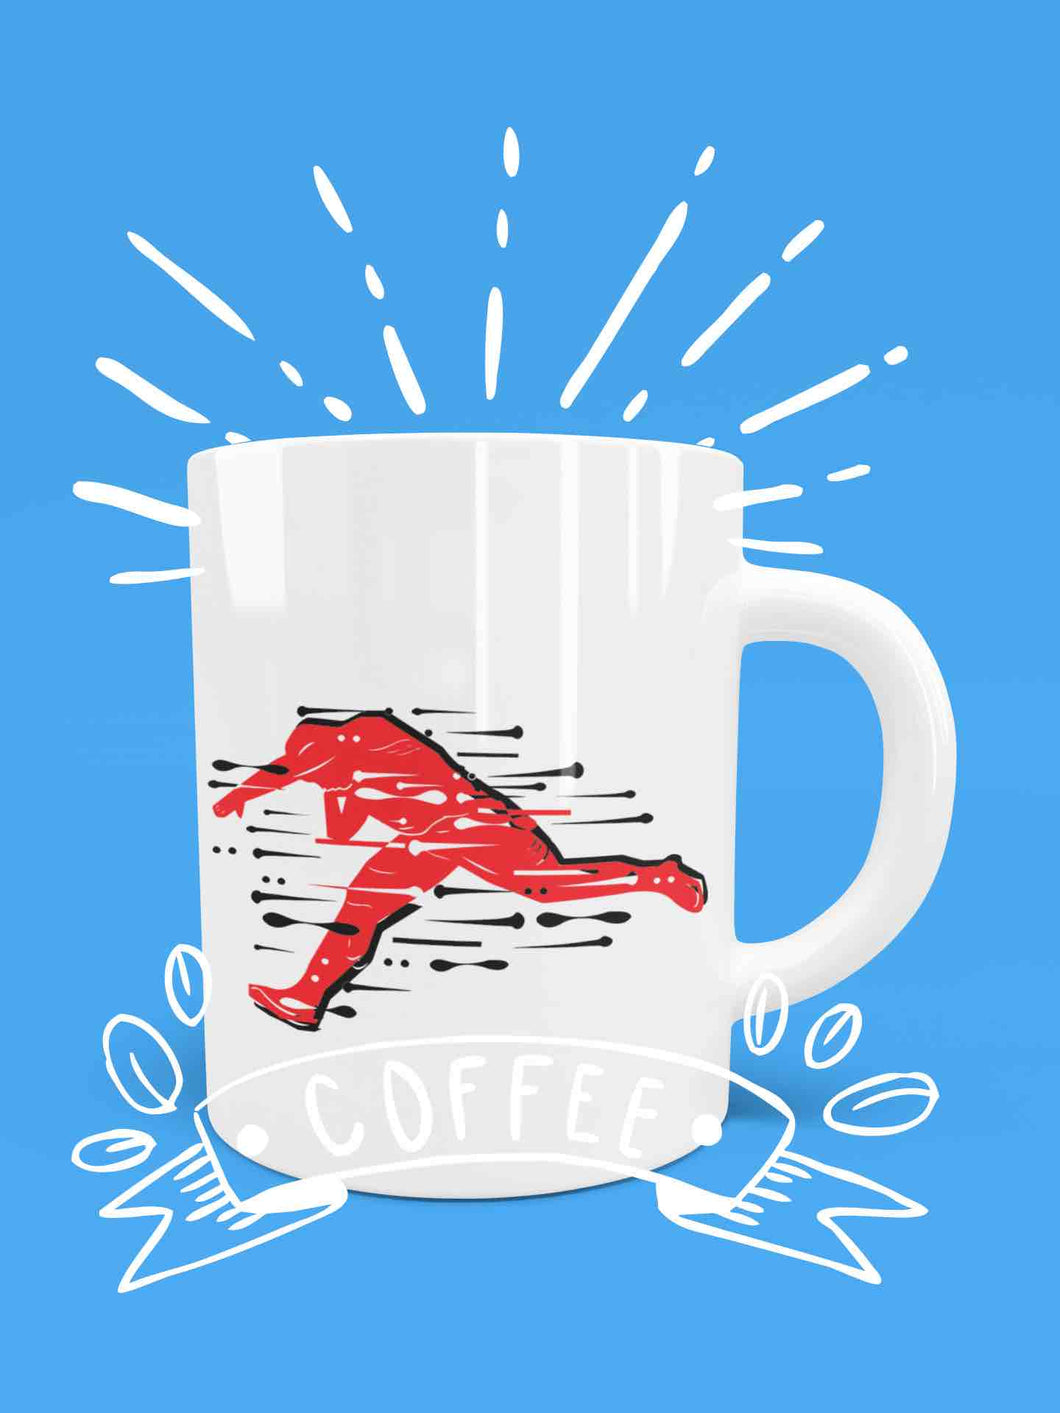 Copy of Shot Putter Coffee Mug